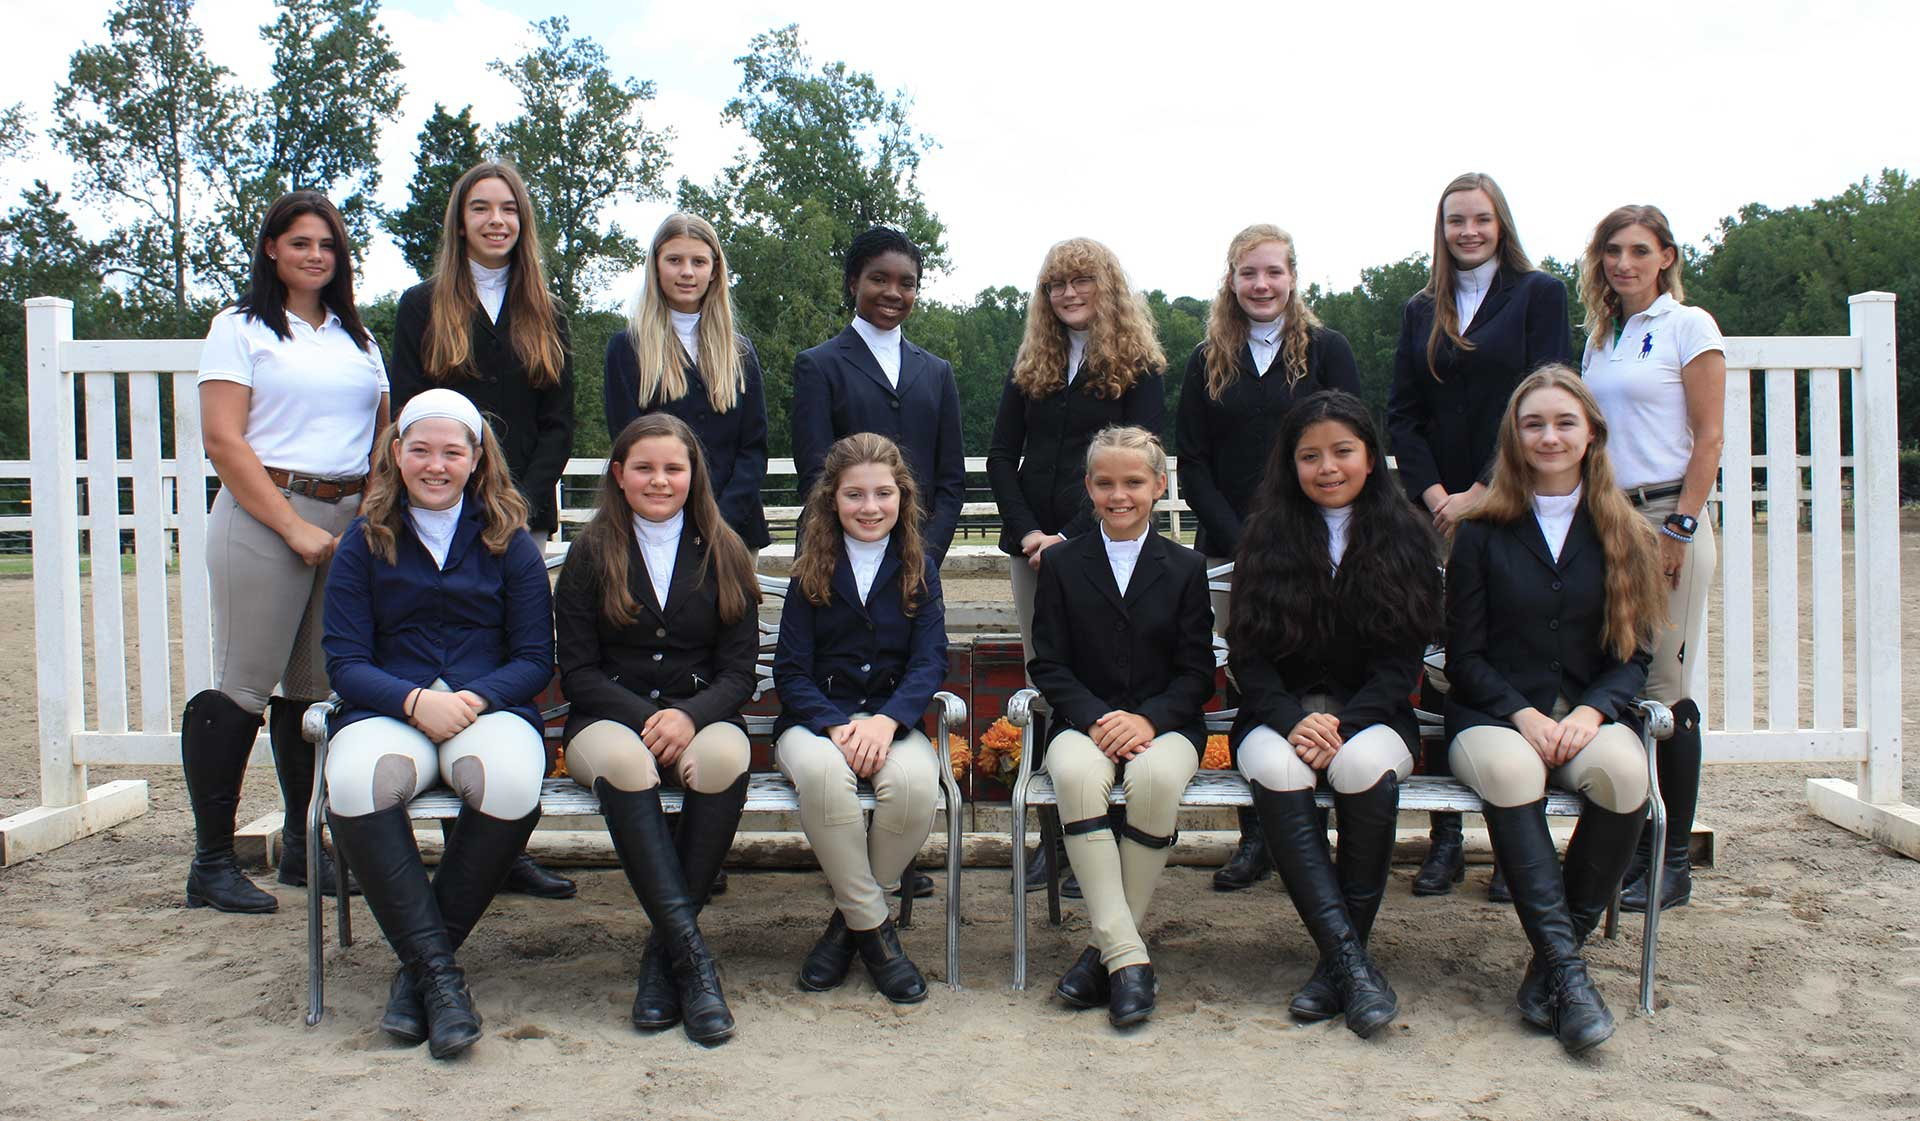 2020 IEA competitive team group photo.